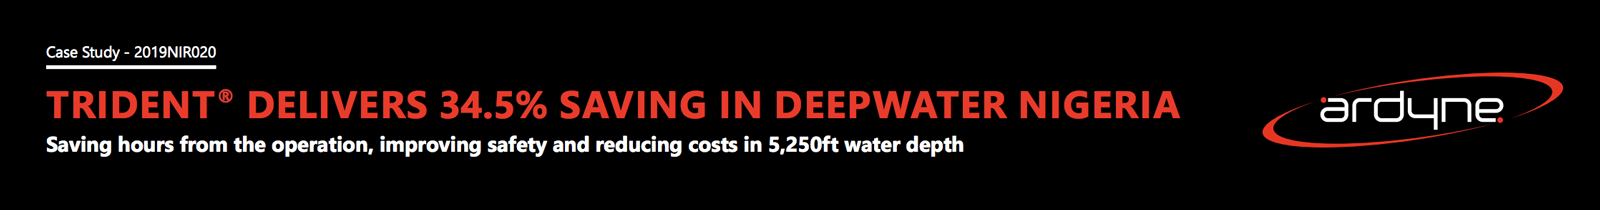 Trident Delivers 34.5 Saving in Deepwater Nigeria